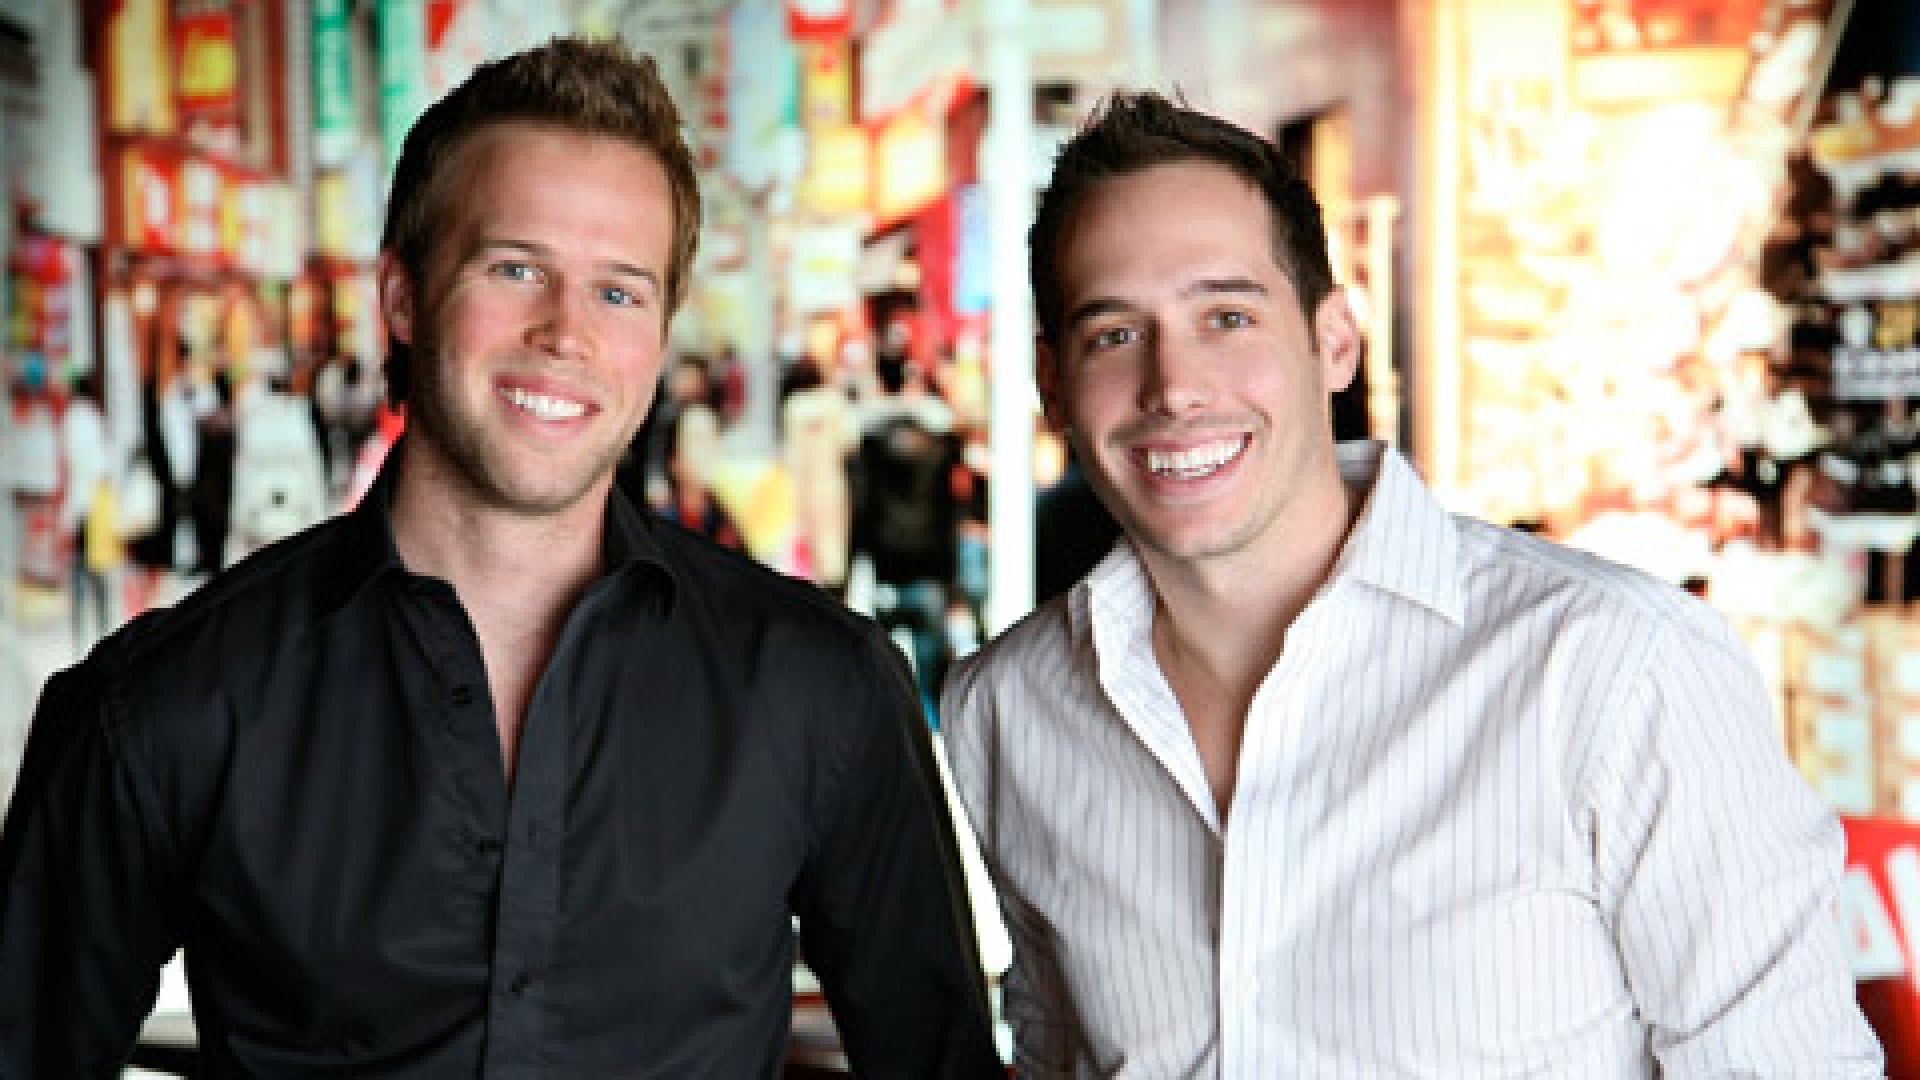 Brothers Courtney and Carter Reum founded VeeV in 2007.